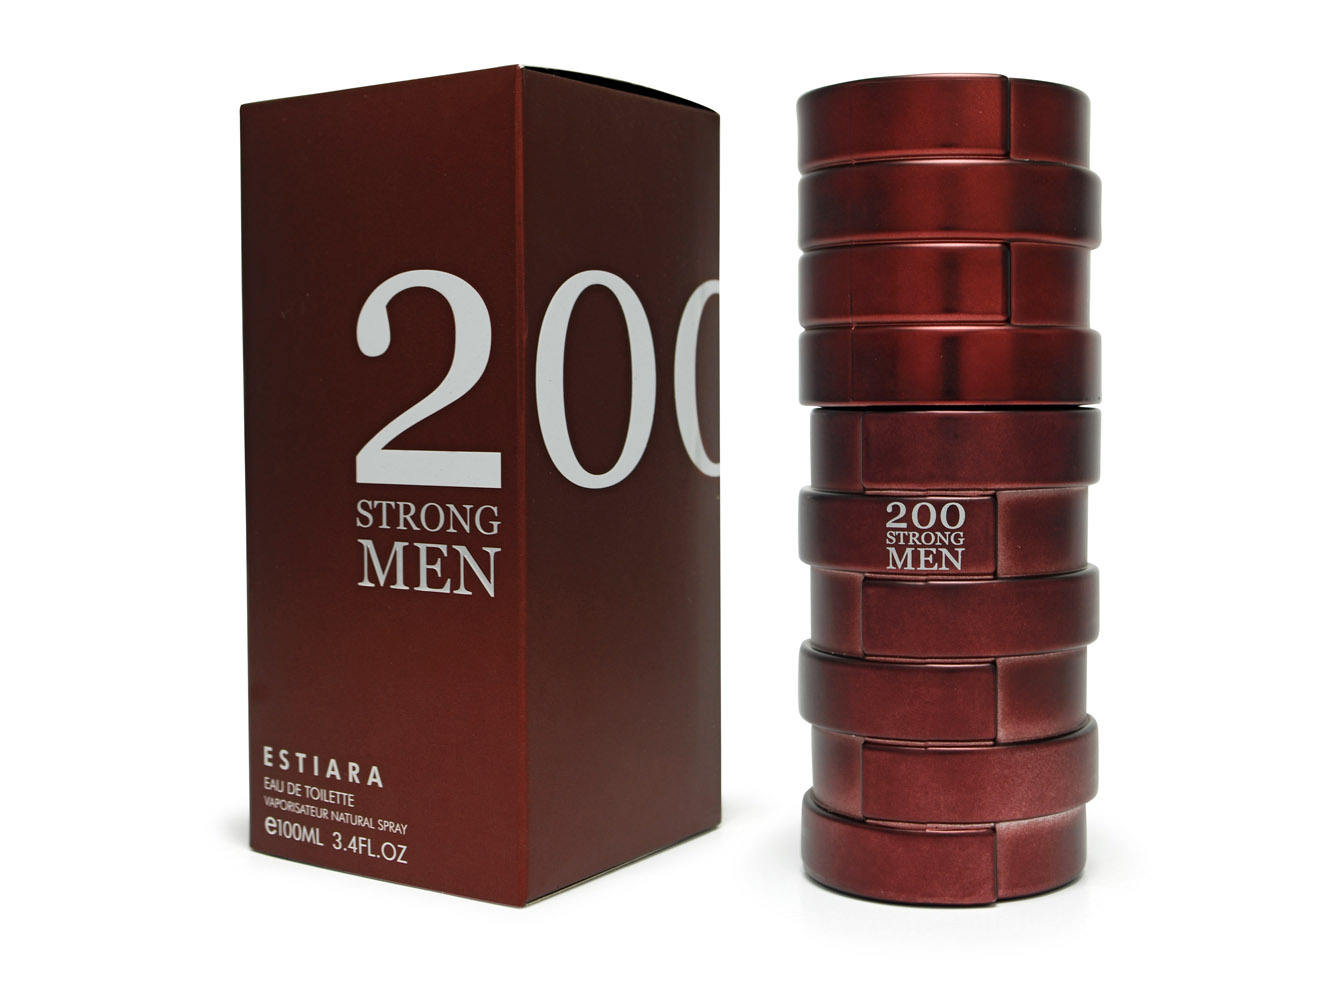 200 STRONG MEN - CAROLINA HERRERA 212 SEXY MEN